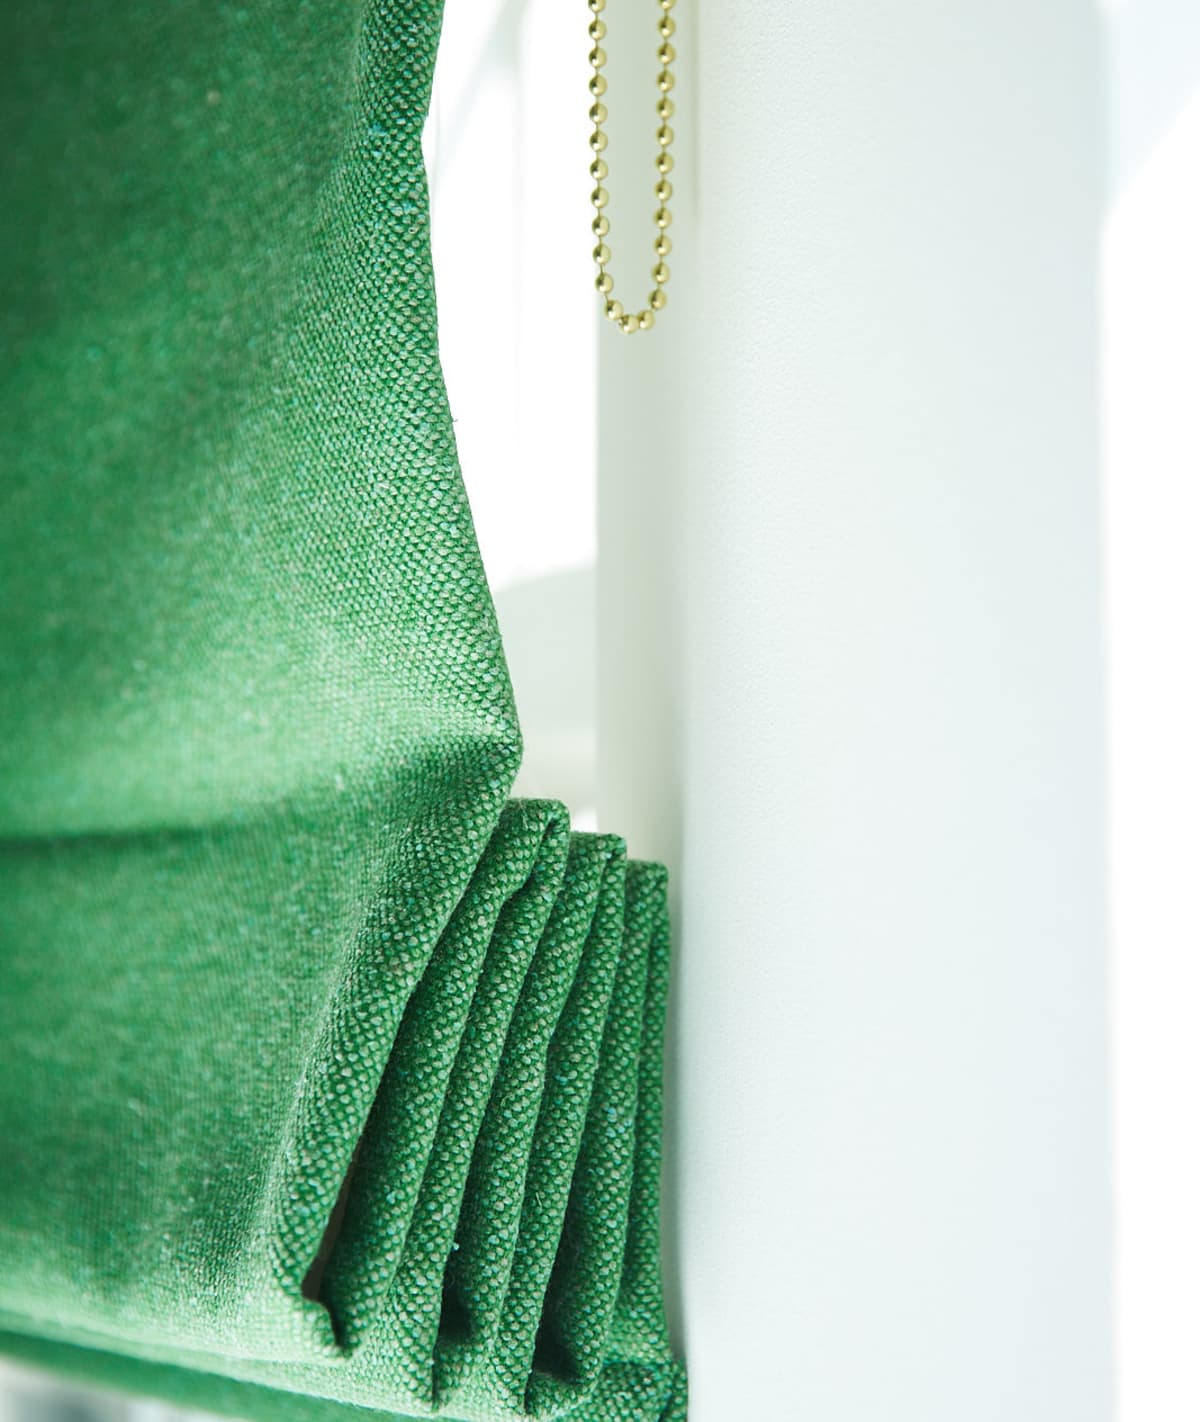 Stitched Antique Green Upcycled Silk Sustainable Curtains